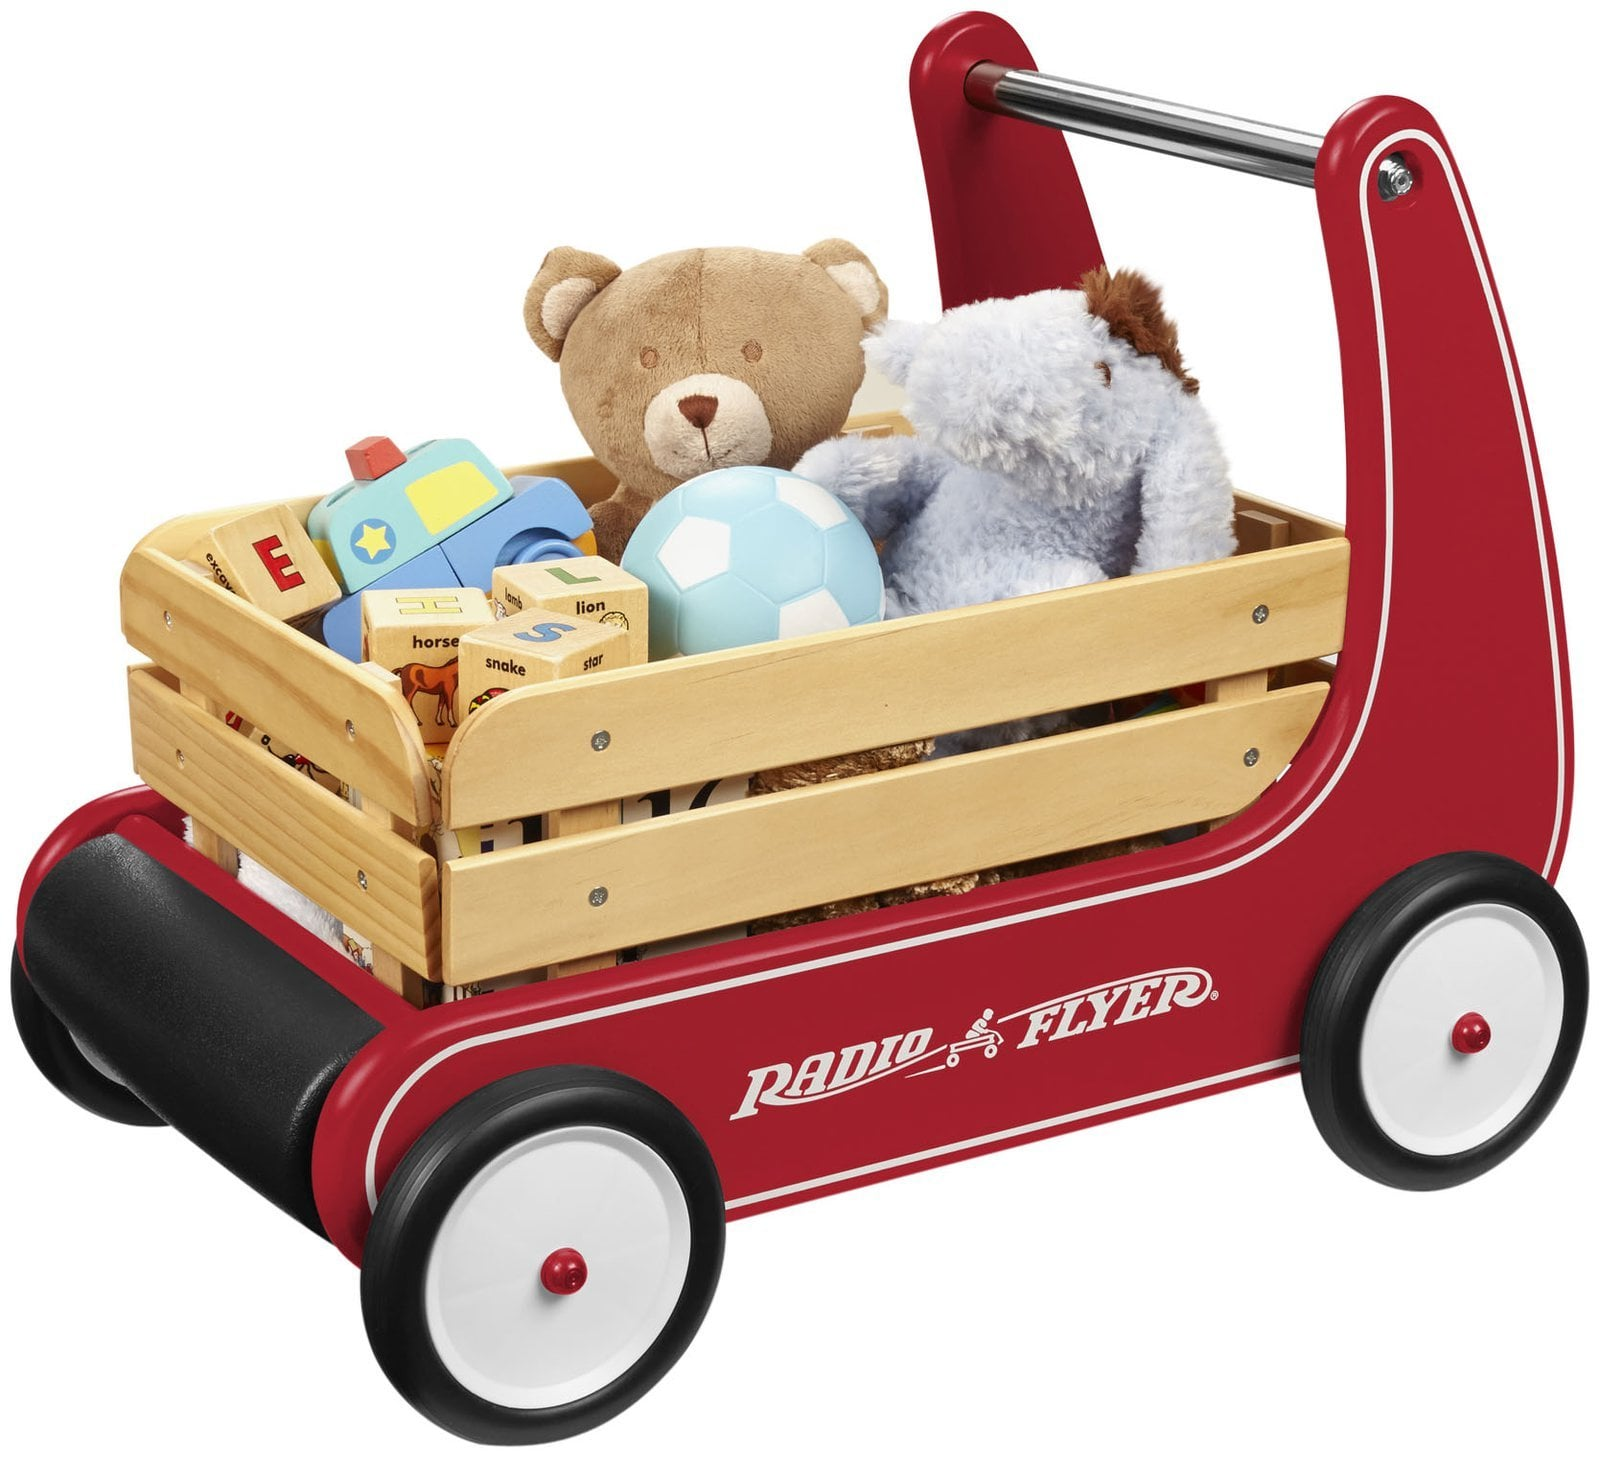 Toy Cars For 9 Year Olds : Radio flyer classic wagon walker great gift ideas for